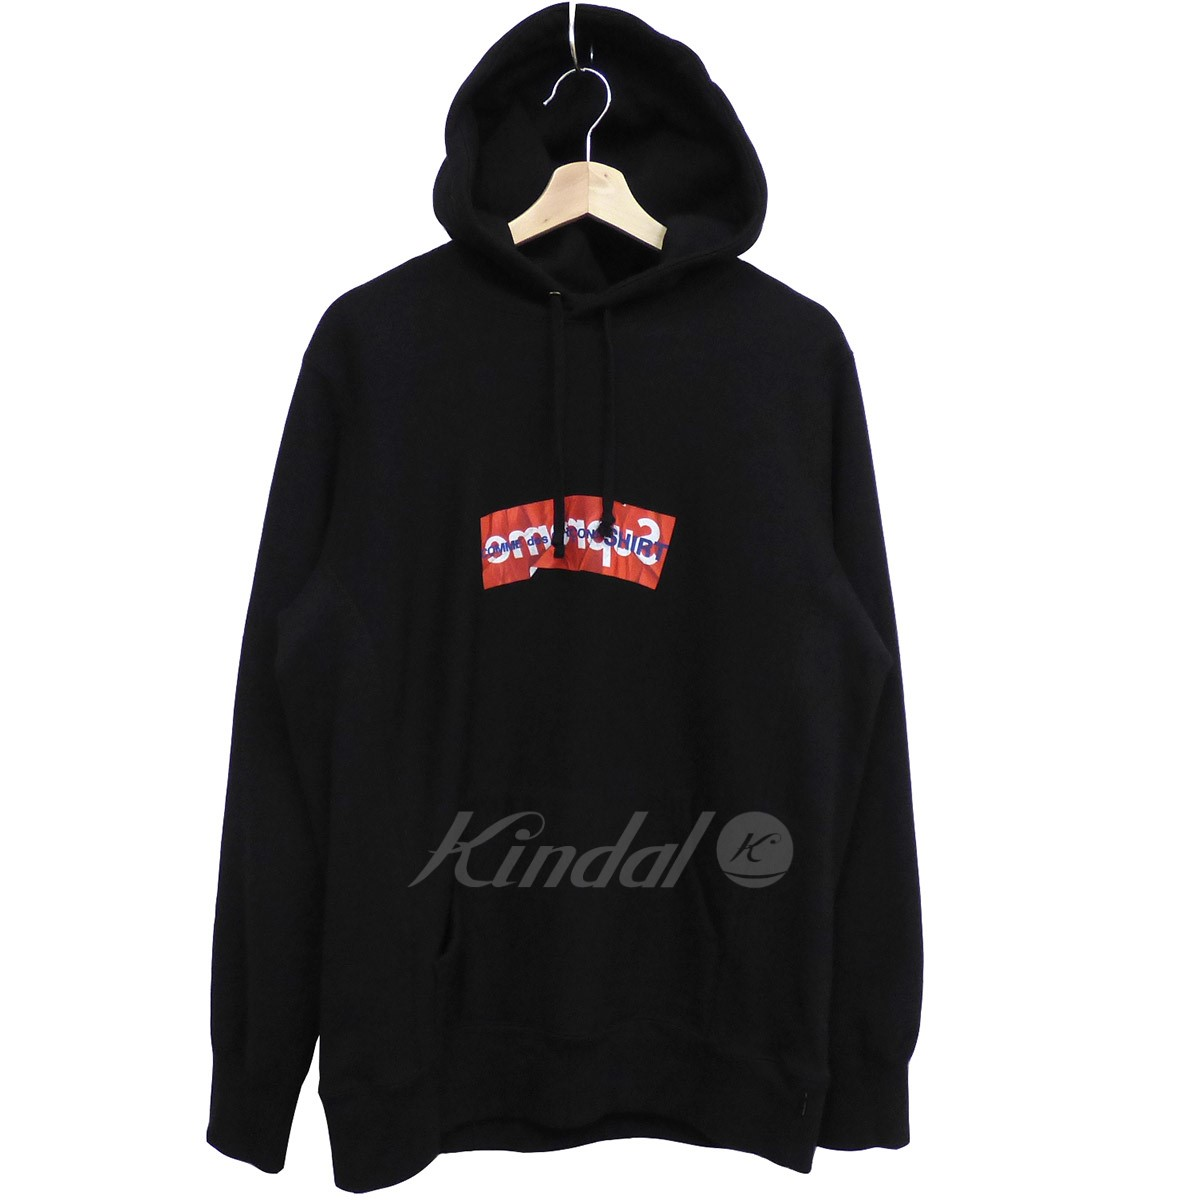 【中古】SUPREME×COMME des GARCONS 17SS Box Logo hooded Sweatshirtボックスロゴパーカー 【送料無料】 【000516】 【KIND1550】